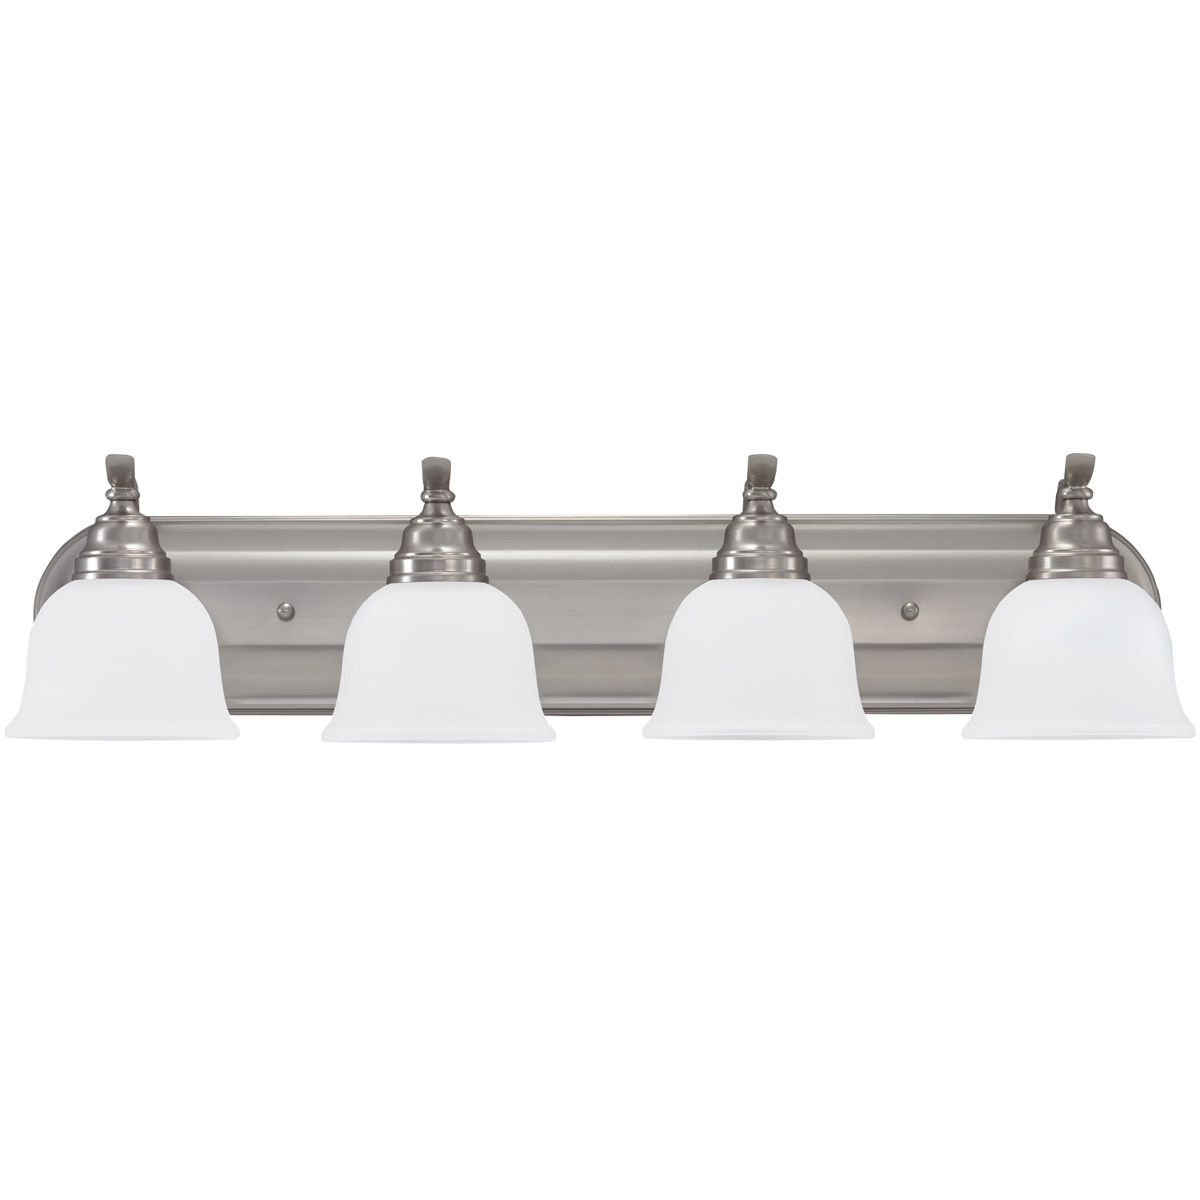 Sea Gull Lighting Wheaton 4 Light Bath Vanity in Brushed Nickel 44628-962